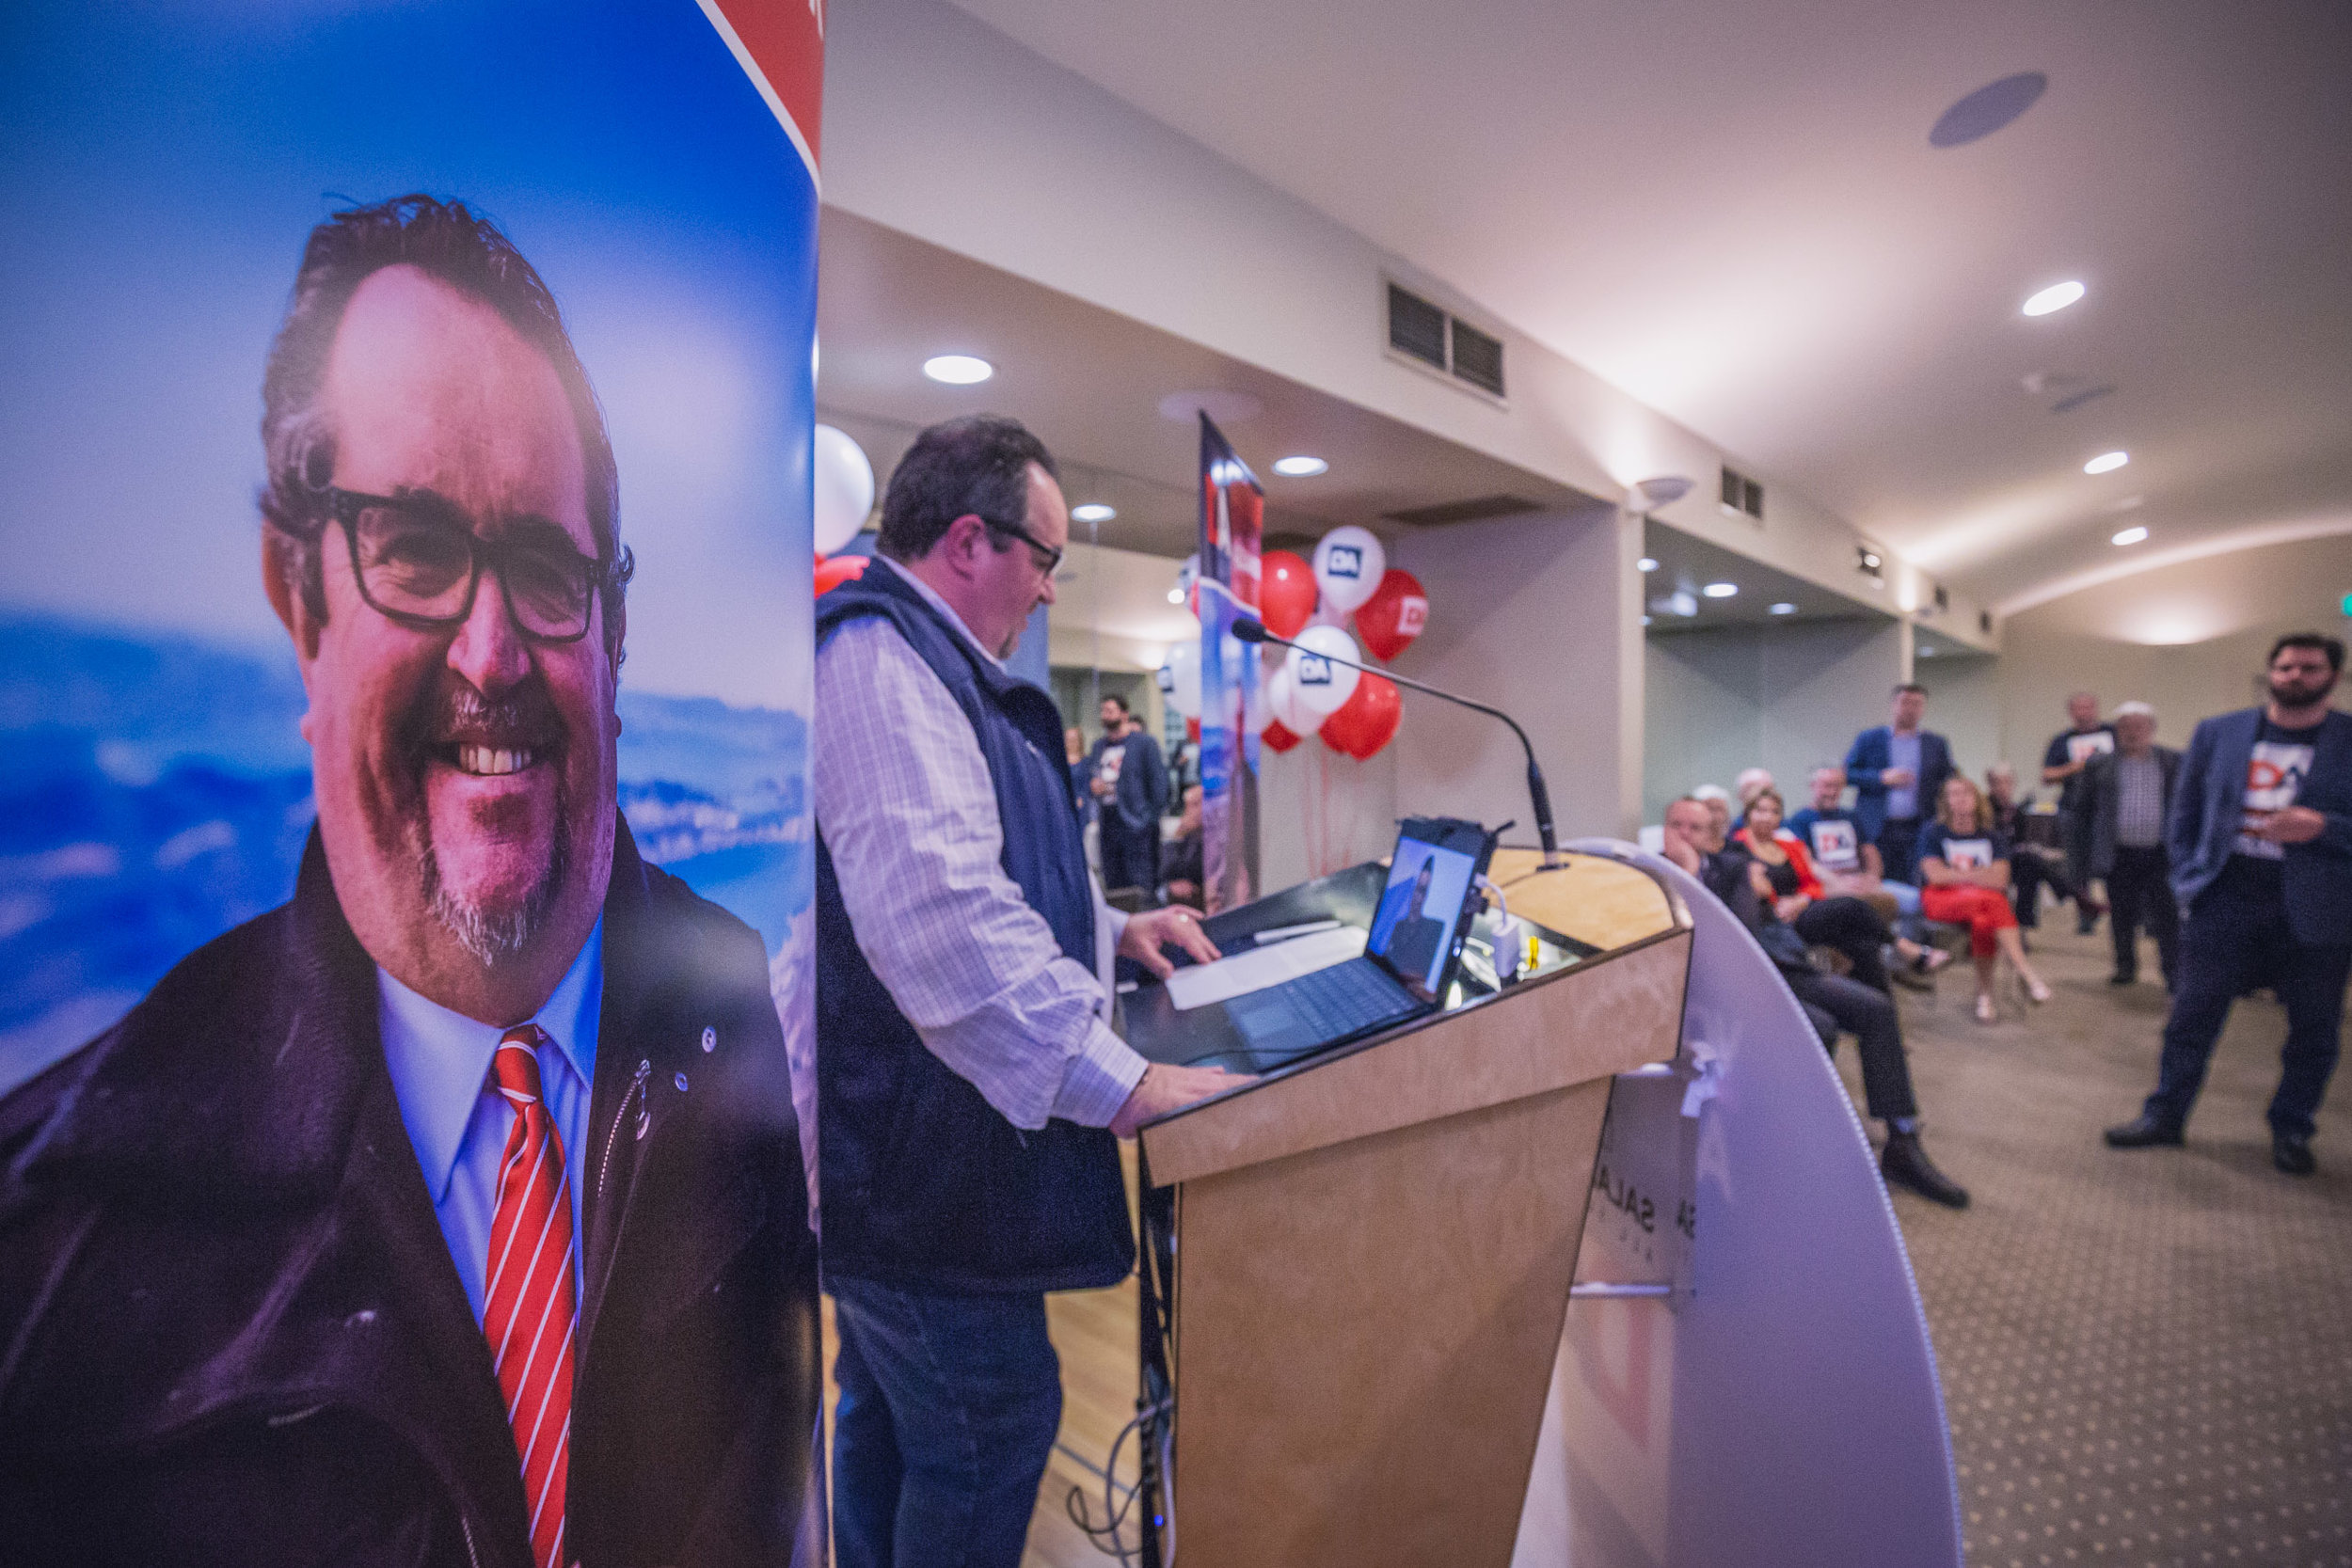 Hobart needs common sense leadership: see what the leaders and innovators in our community are saying about Darren Alexander, 2018 Candidate for Lord Mayor of Hobart.